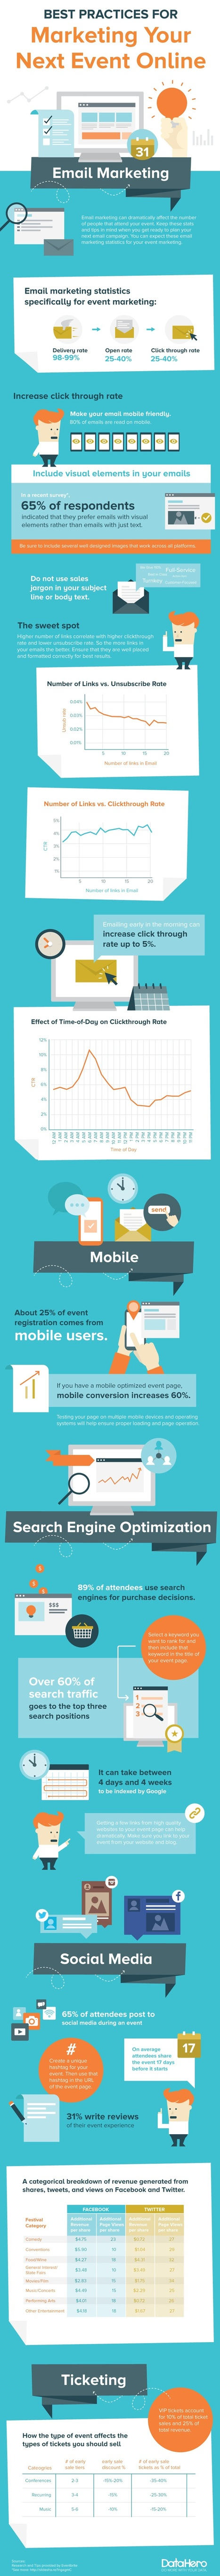 How to Promote an Event Using Online Marketing #Infographic | MarketingHits | Scoop.it